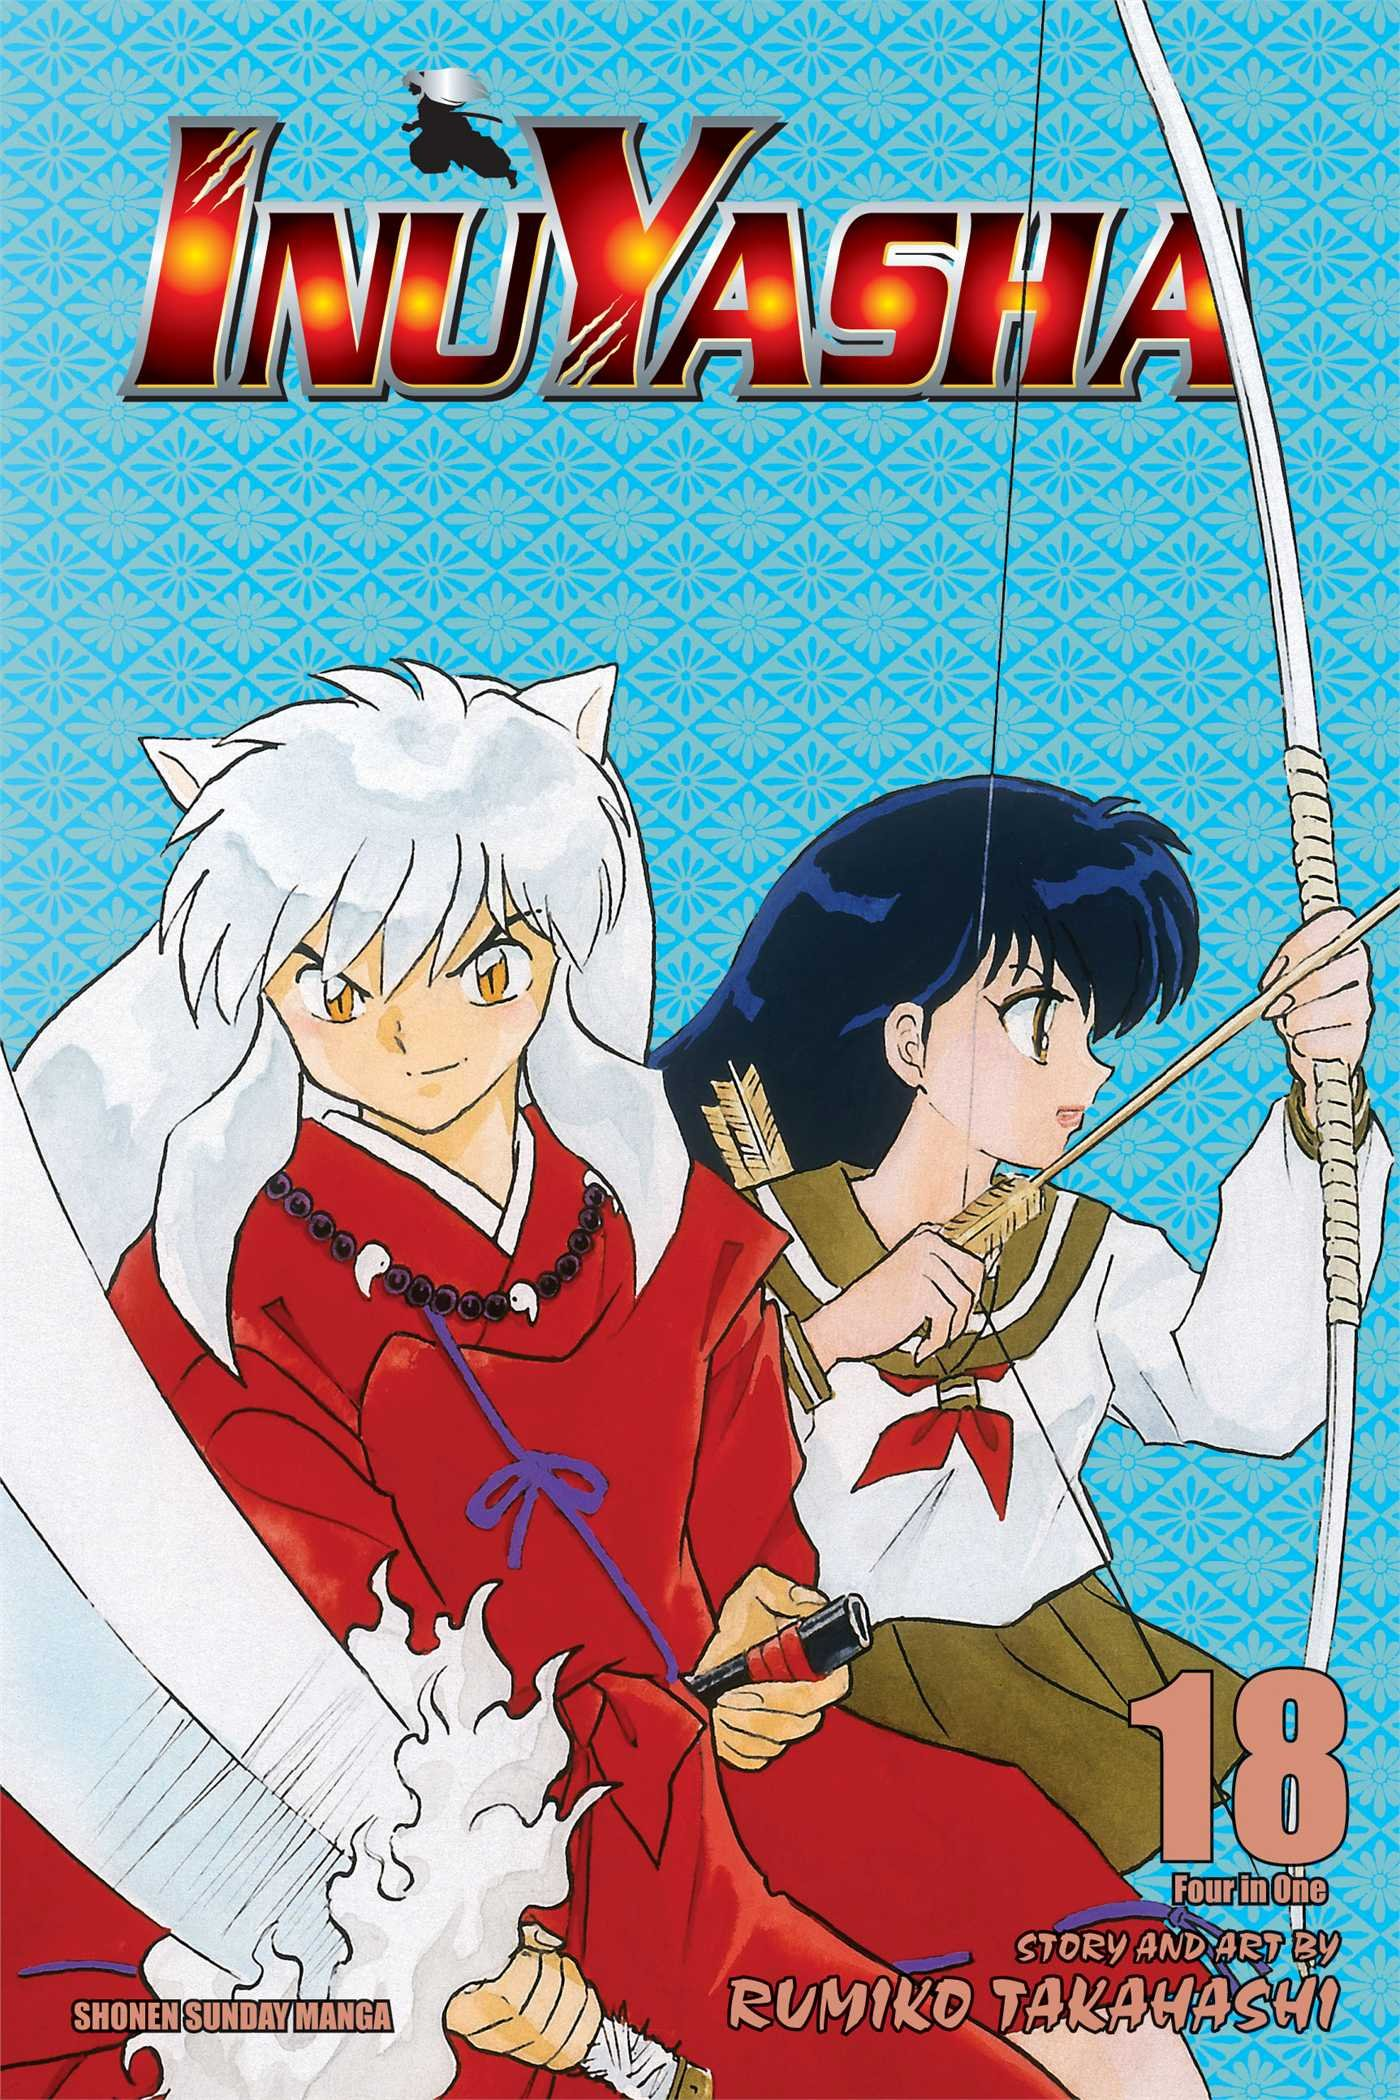 Image result for inuyasha manga covers